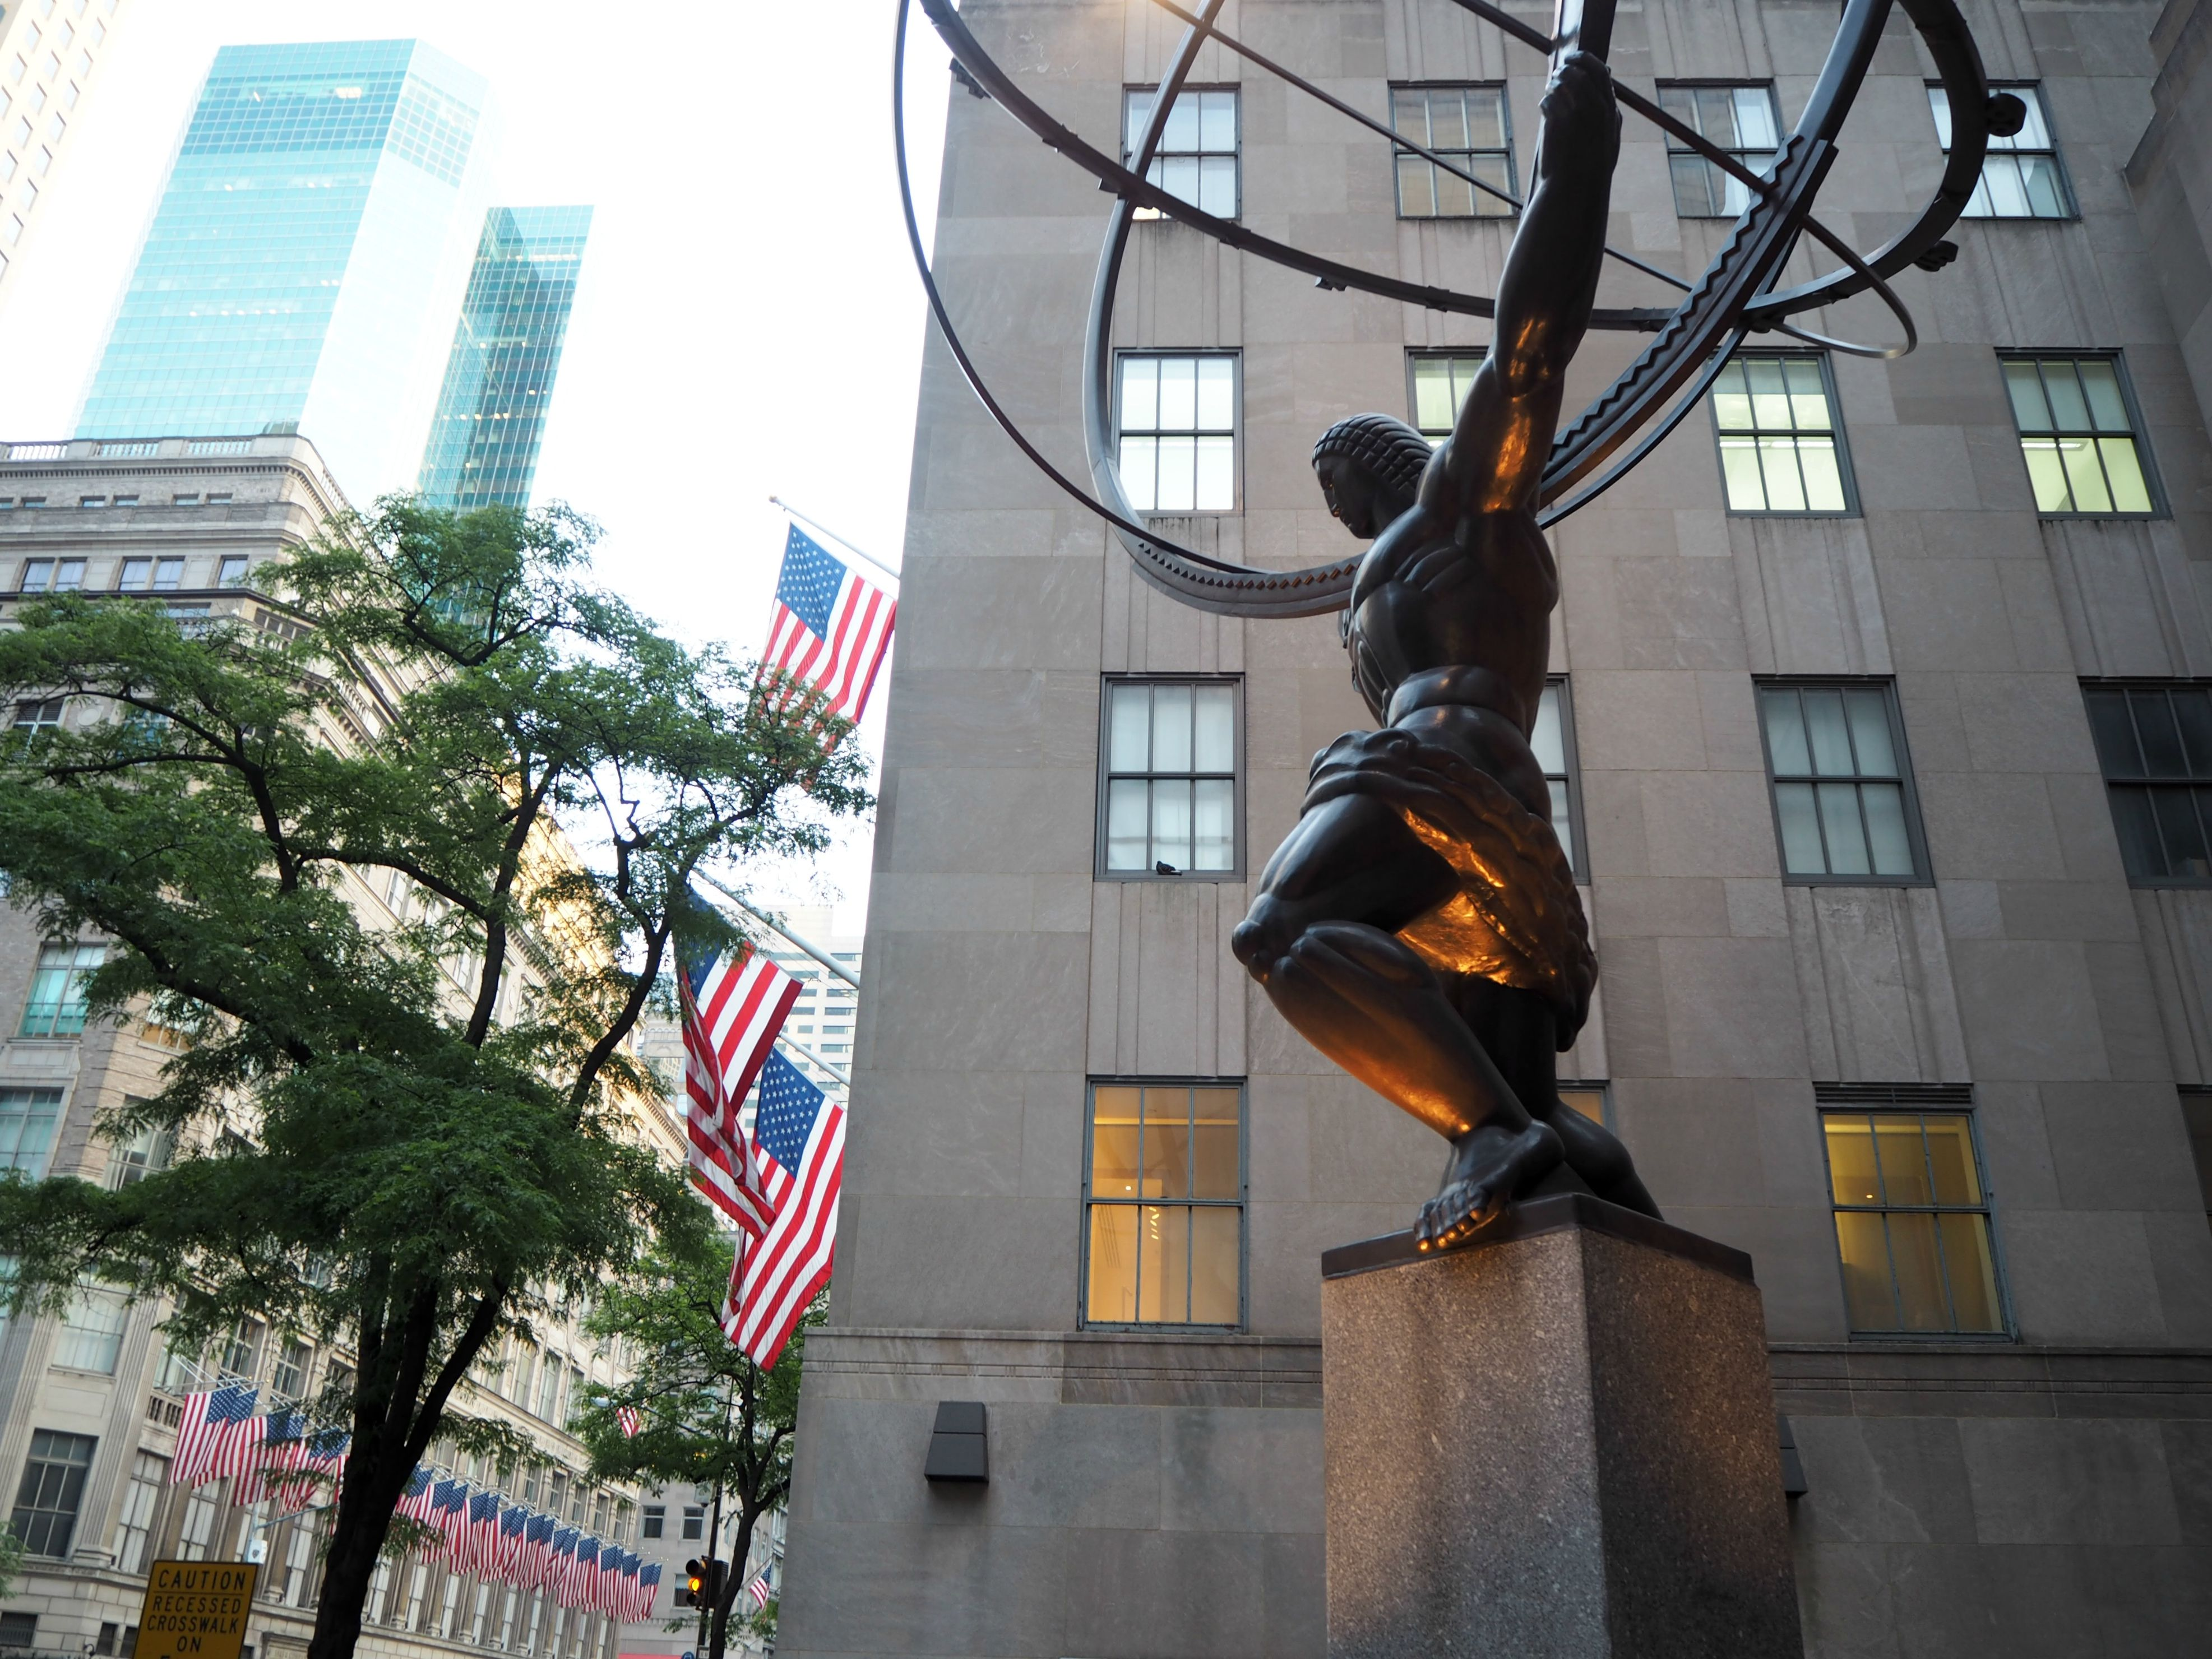 Atlas in front of Rockefeller Building in New York City